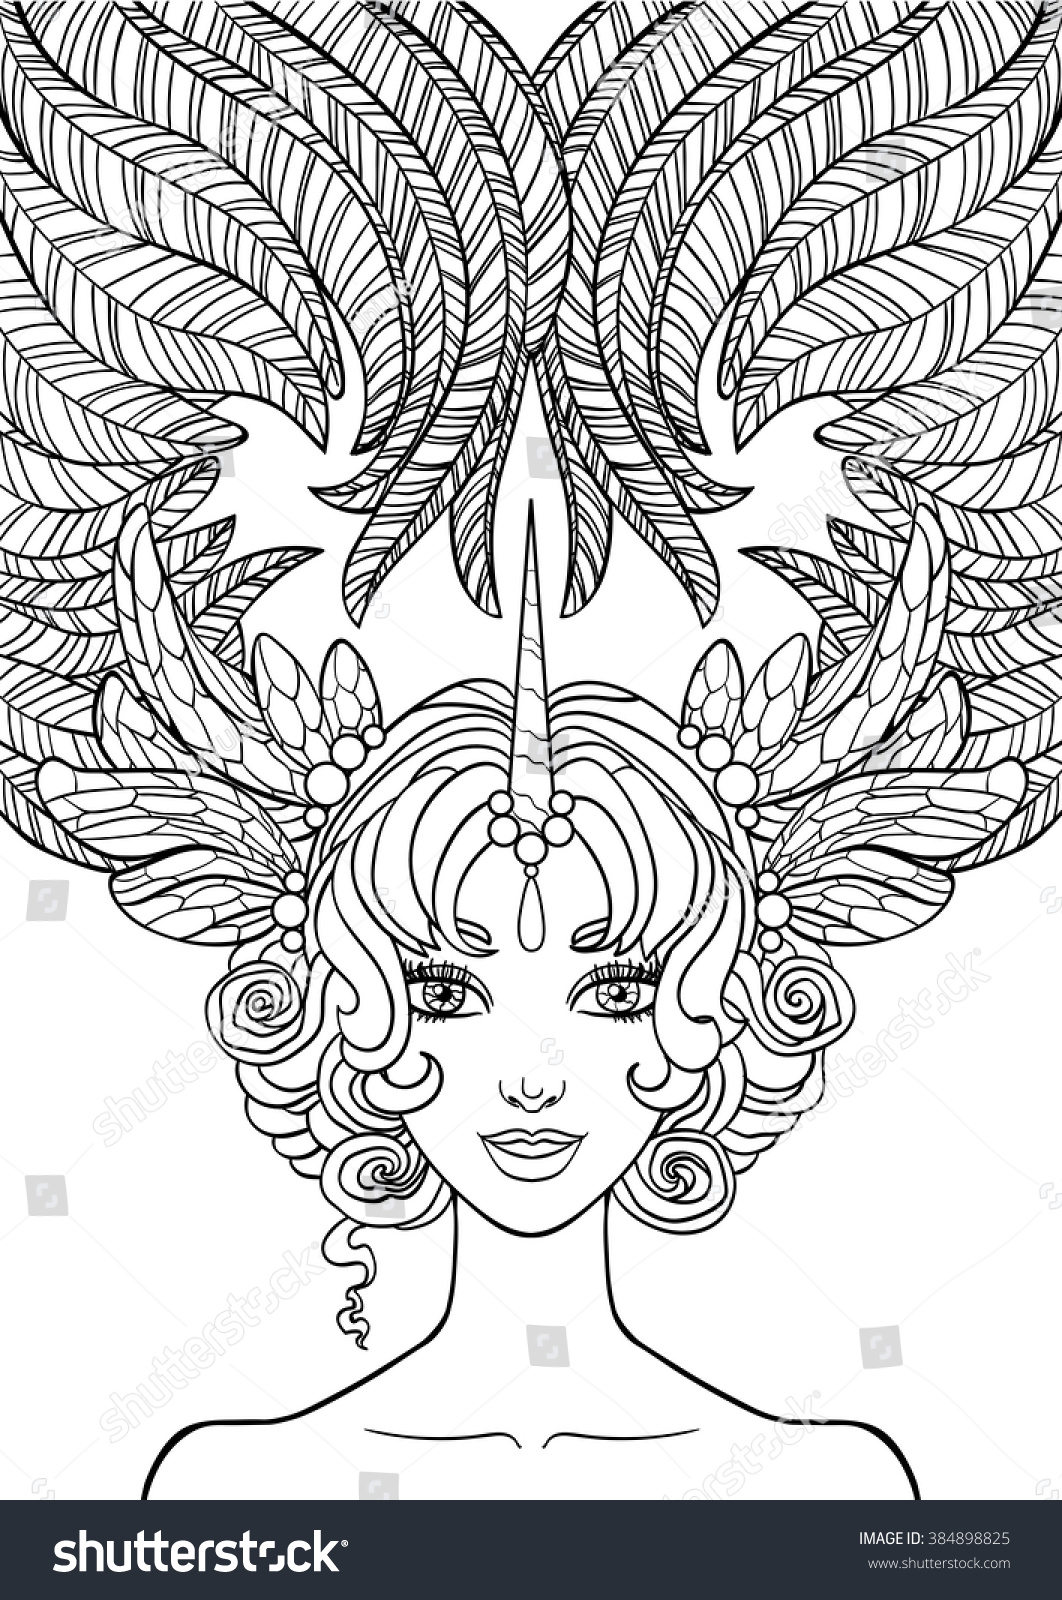 Pretty girl coloring pages - Beautiful Girl Coloring Pages Busytown Mysteries Coloring Pages